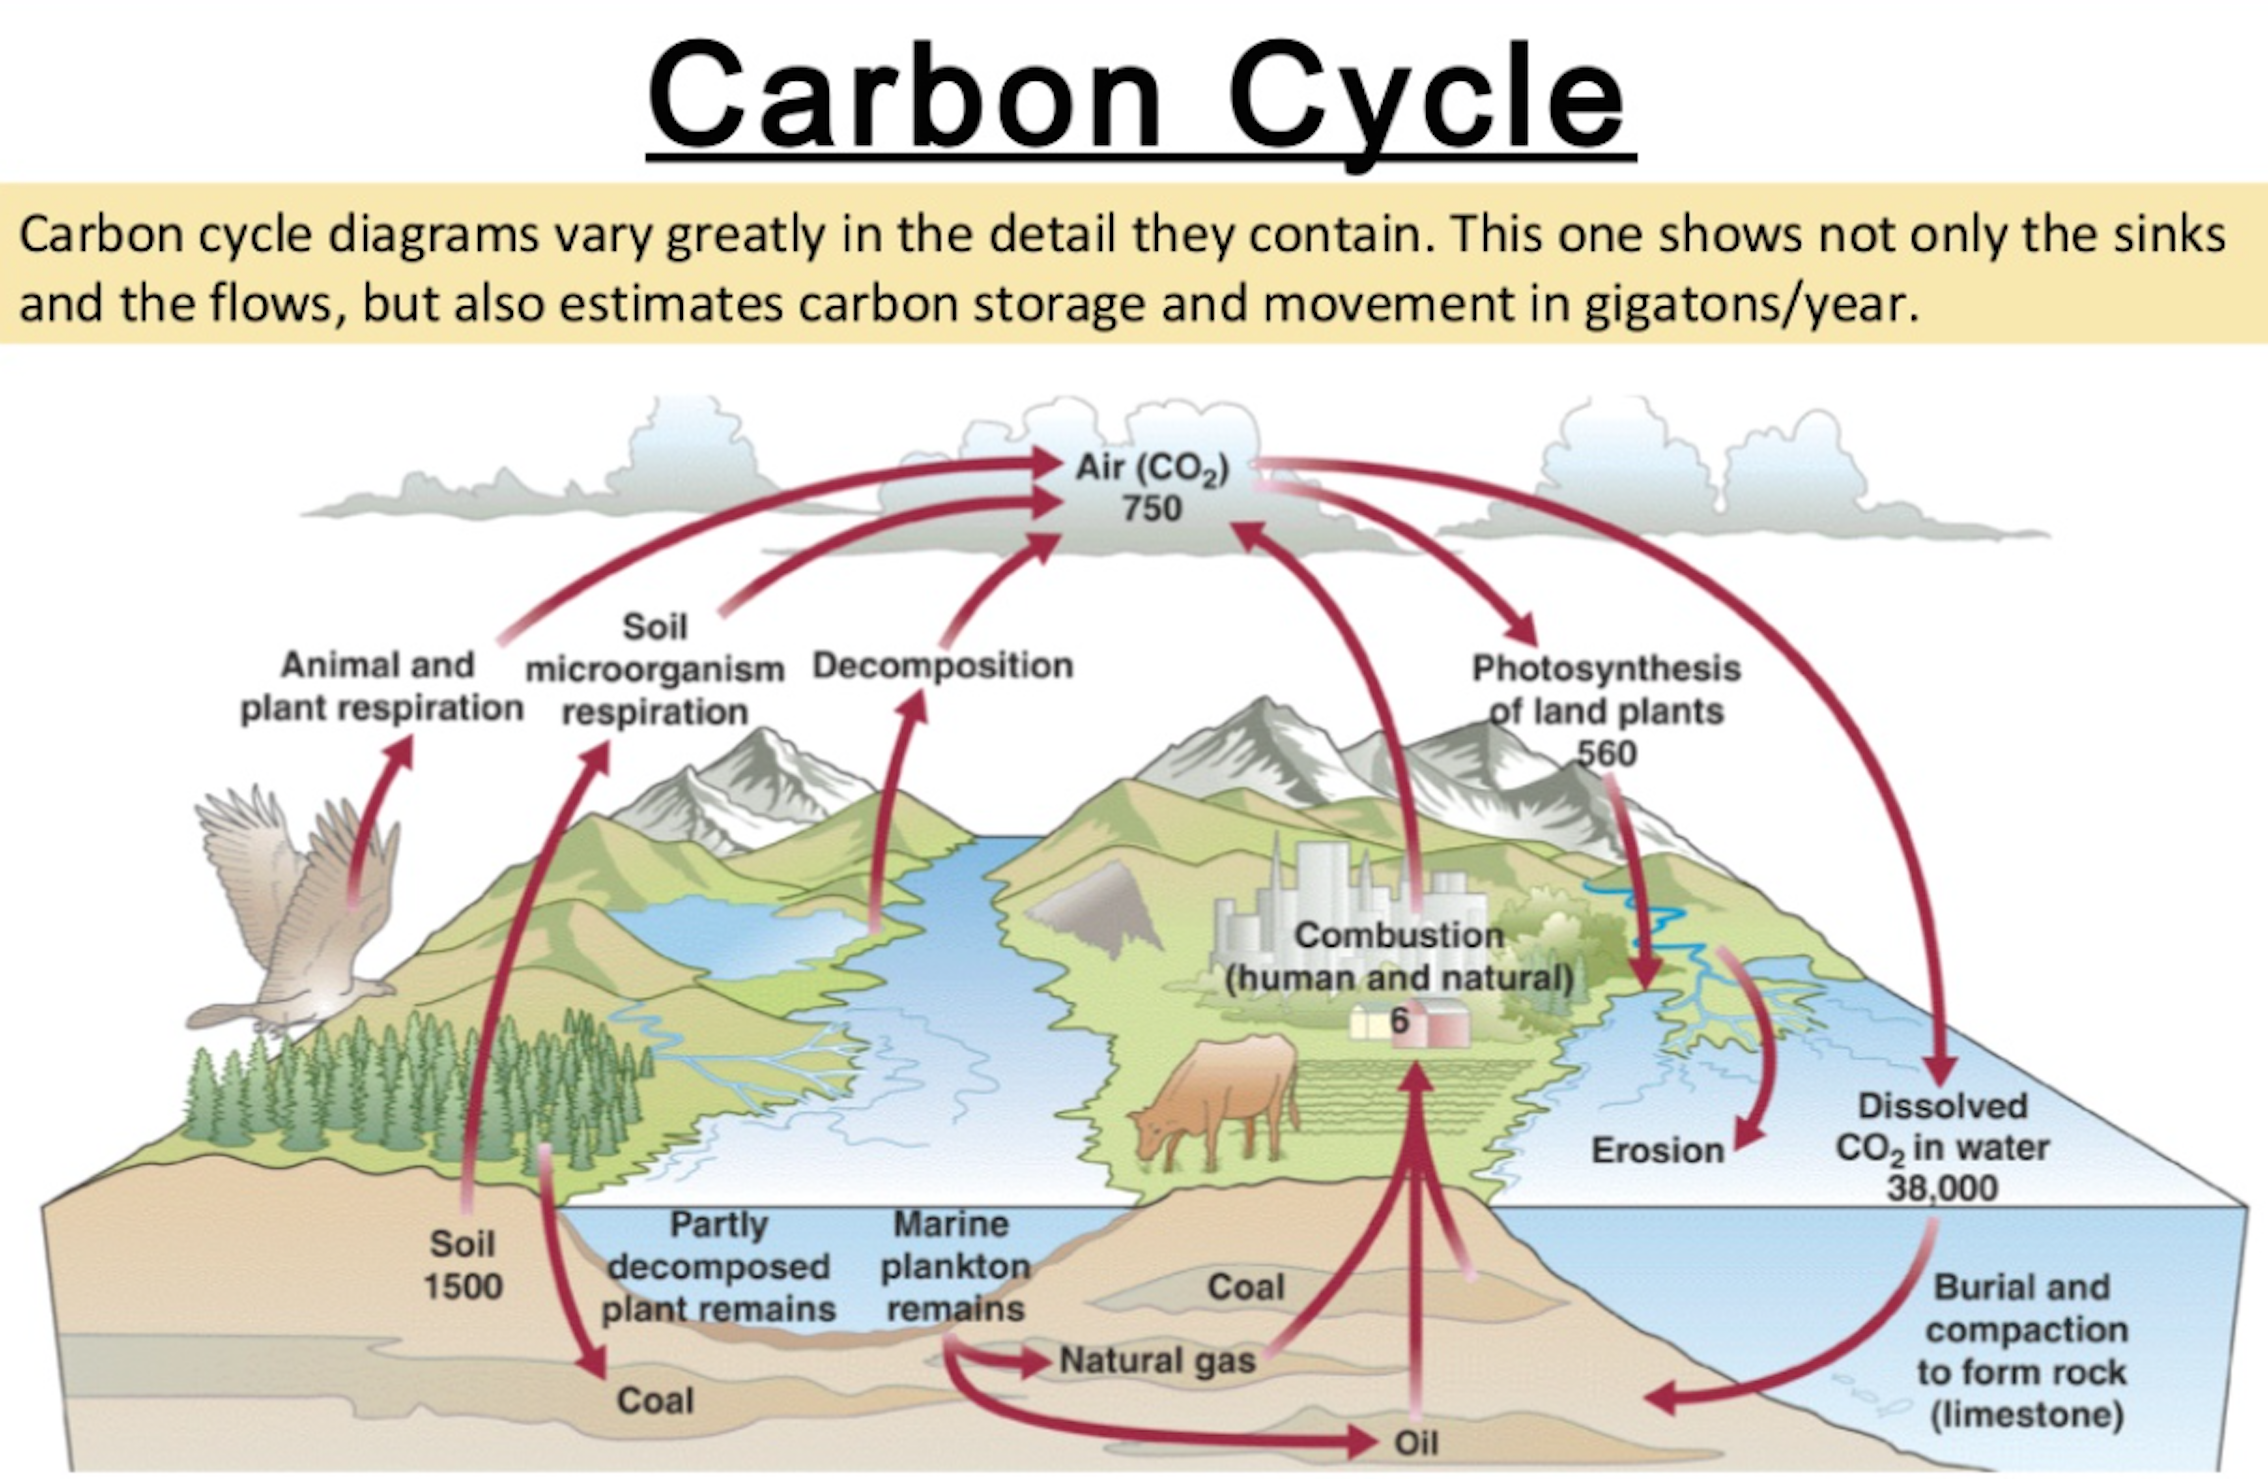 Mr horrocks biology 43 carbon cycling screen shot 2016 09 01 at 65757 am instructions after studying the carbon cycle above in ccuart Gallery